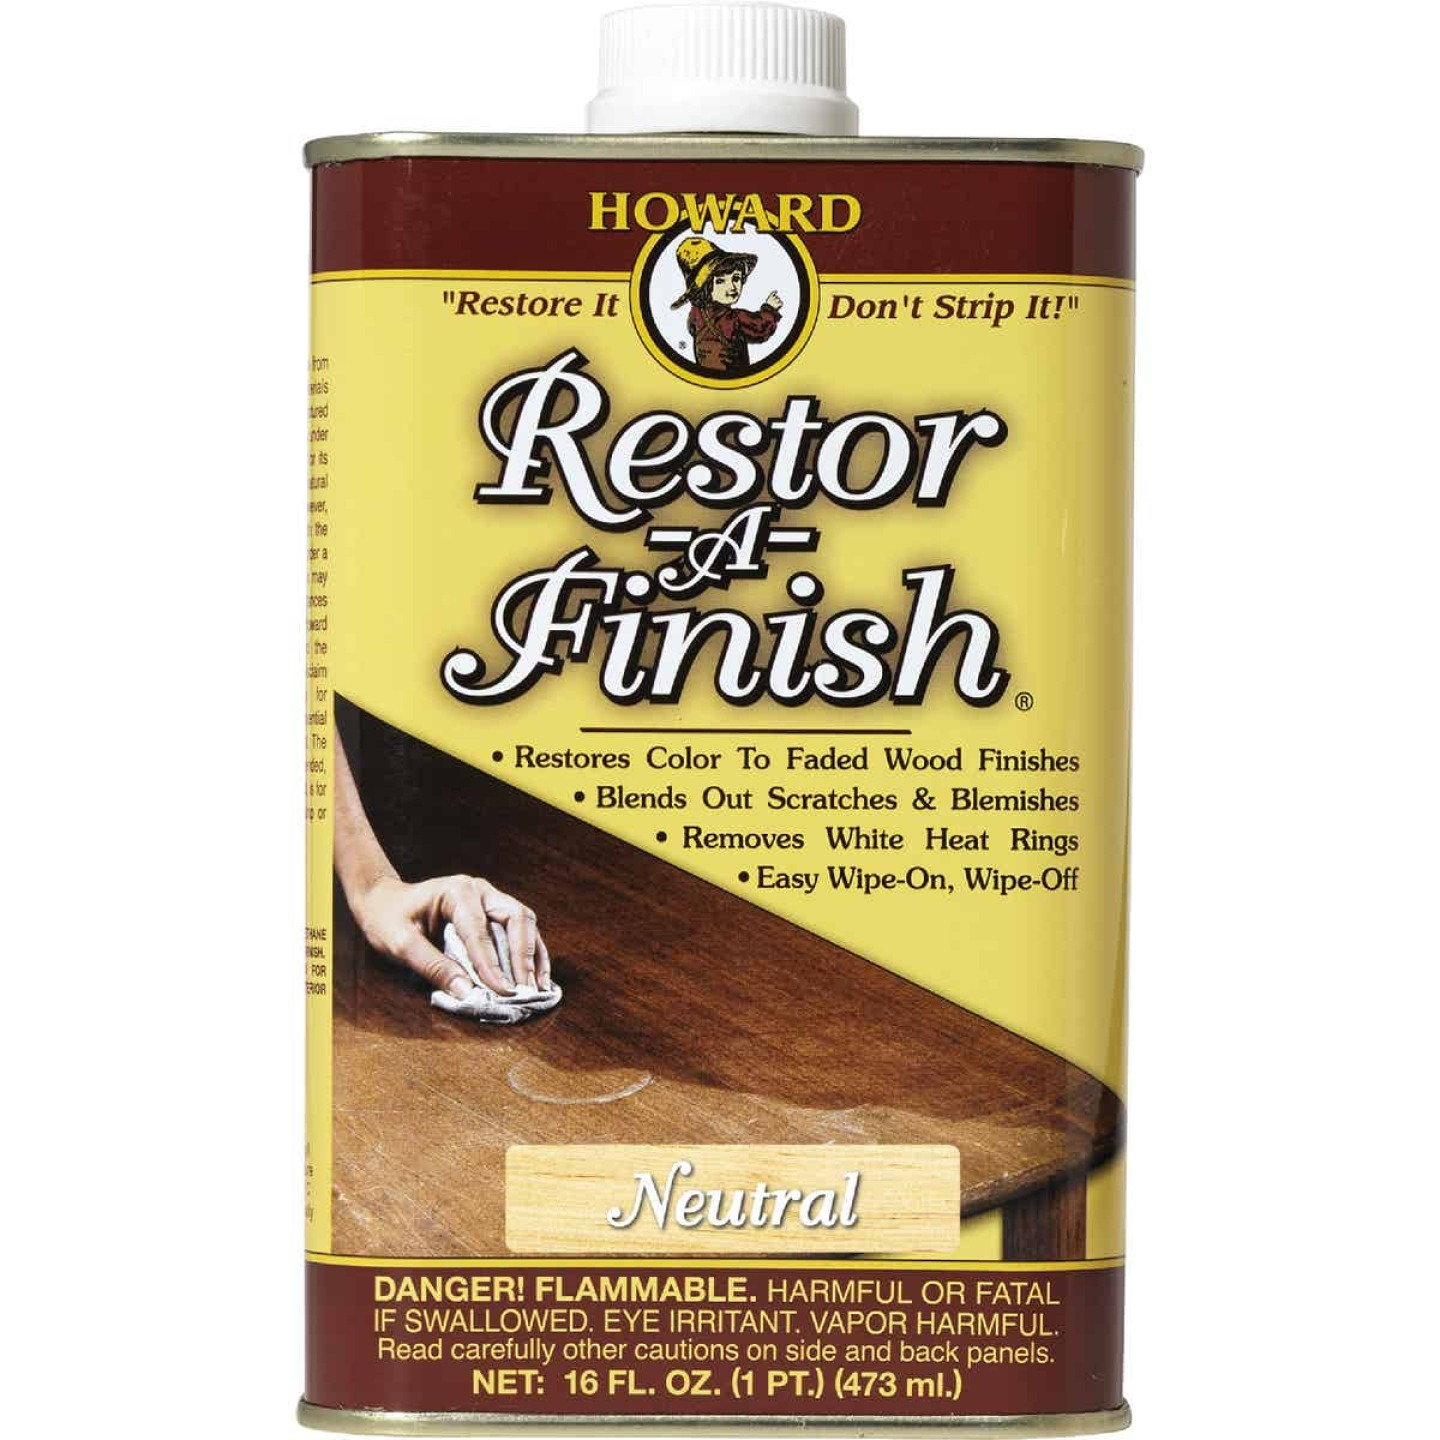 Howard Restor-A-Finish 16 Oz. Neutral Wood Finish Restorer Image 1